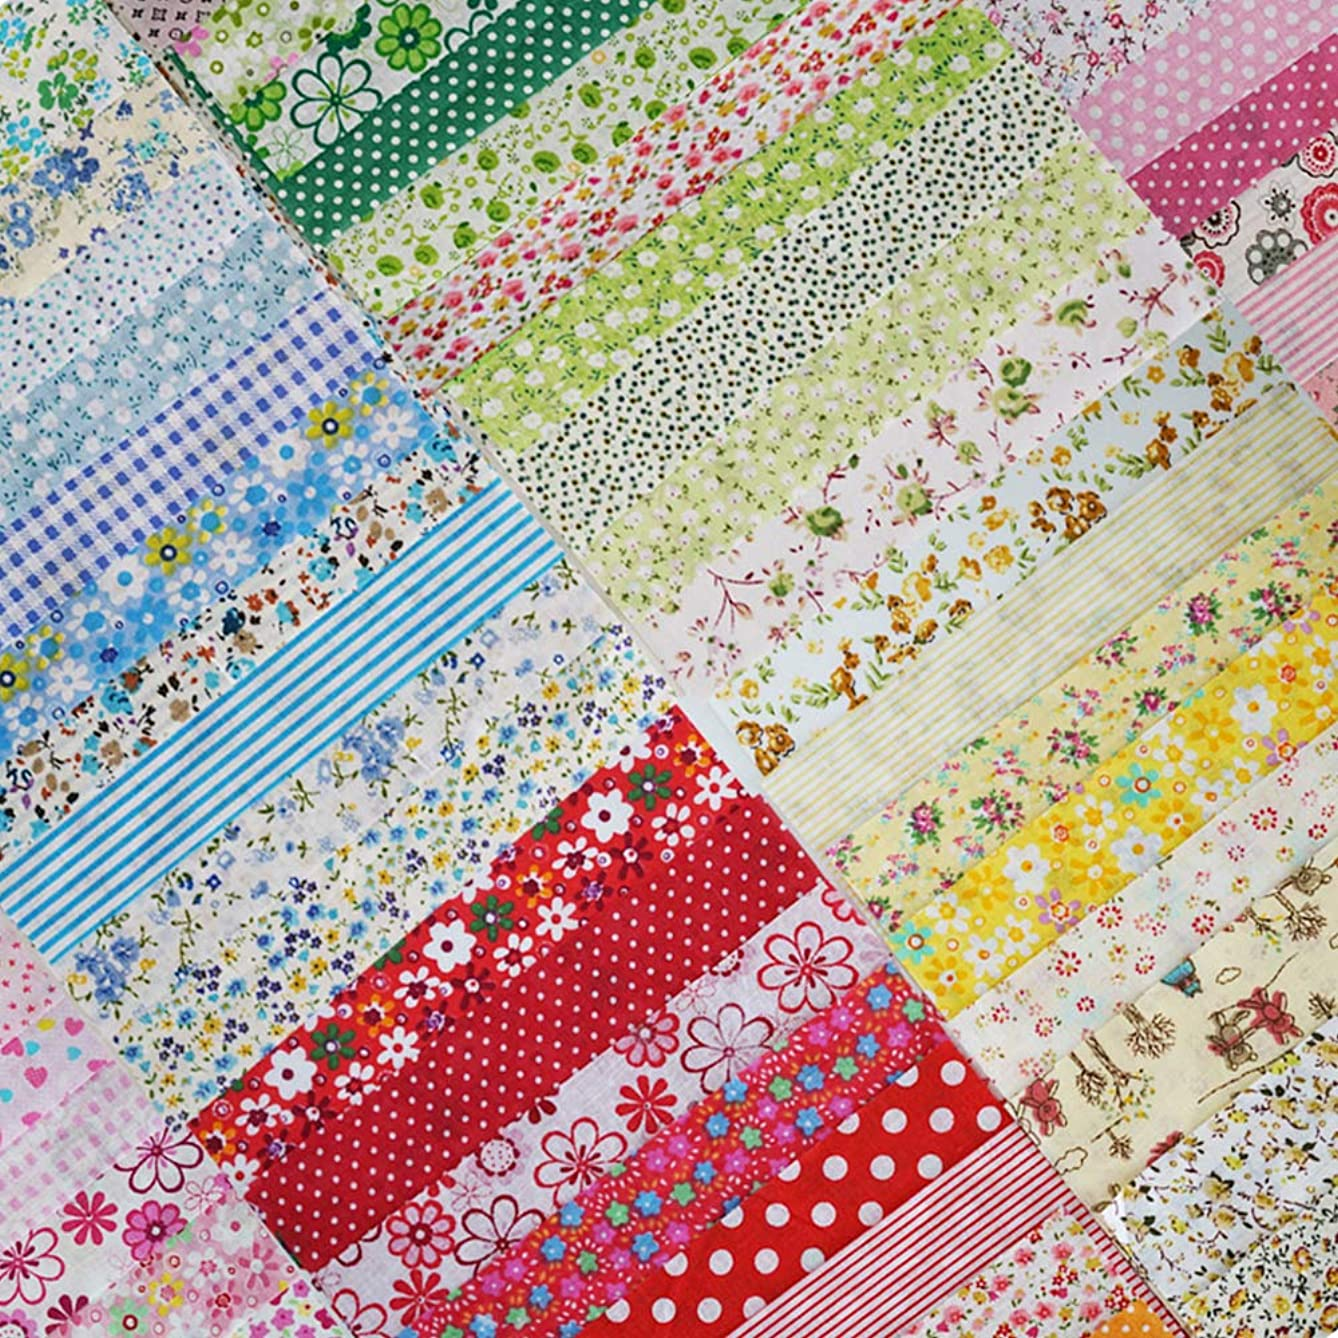 Phantomon 50pcs 8in x 8in Cotton Fabric Craft Linen Square Precut Patchwork Sheets for Quilting, Sewing, Scrapbooking, Simplicity Patterns (20cm x 20cm)